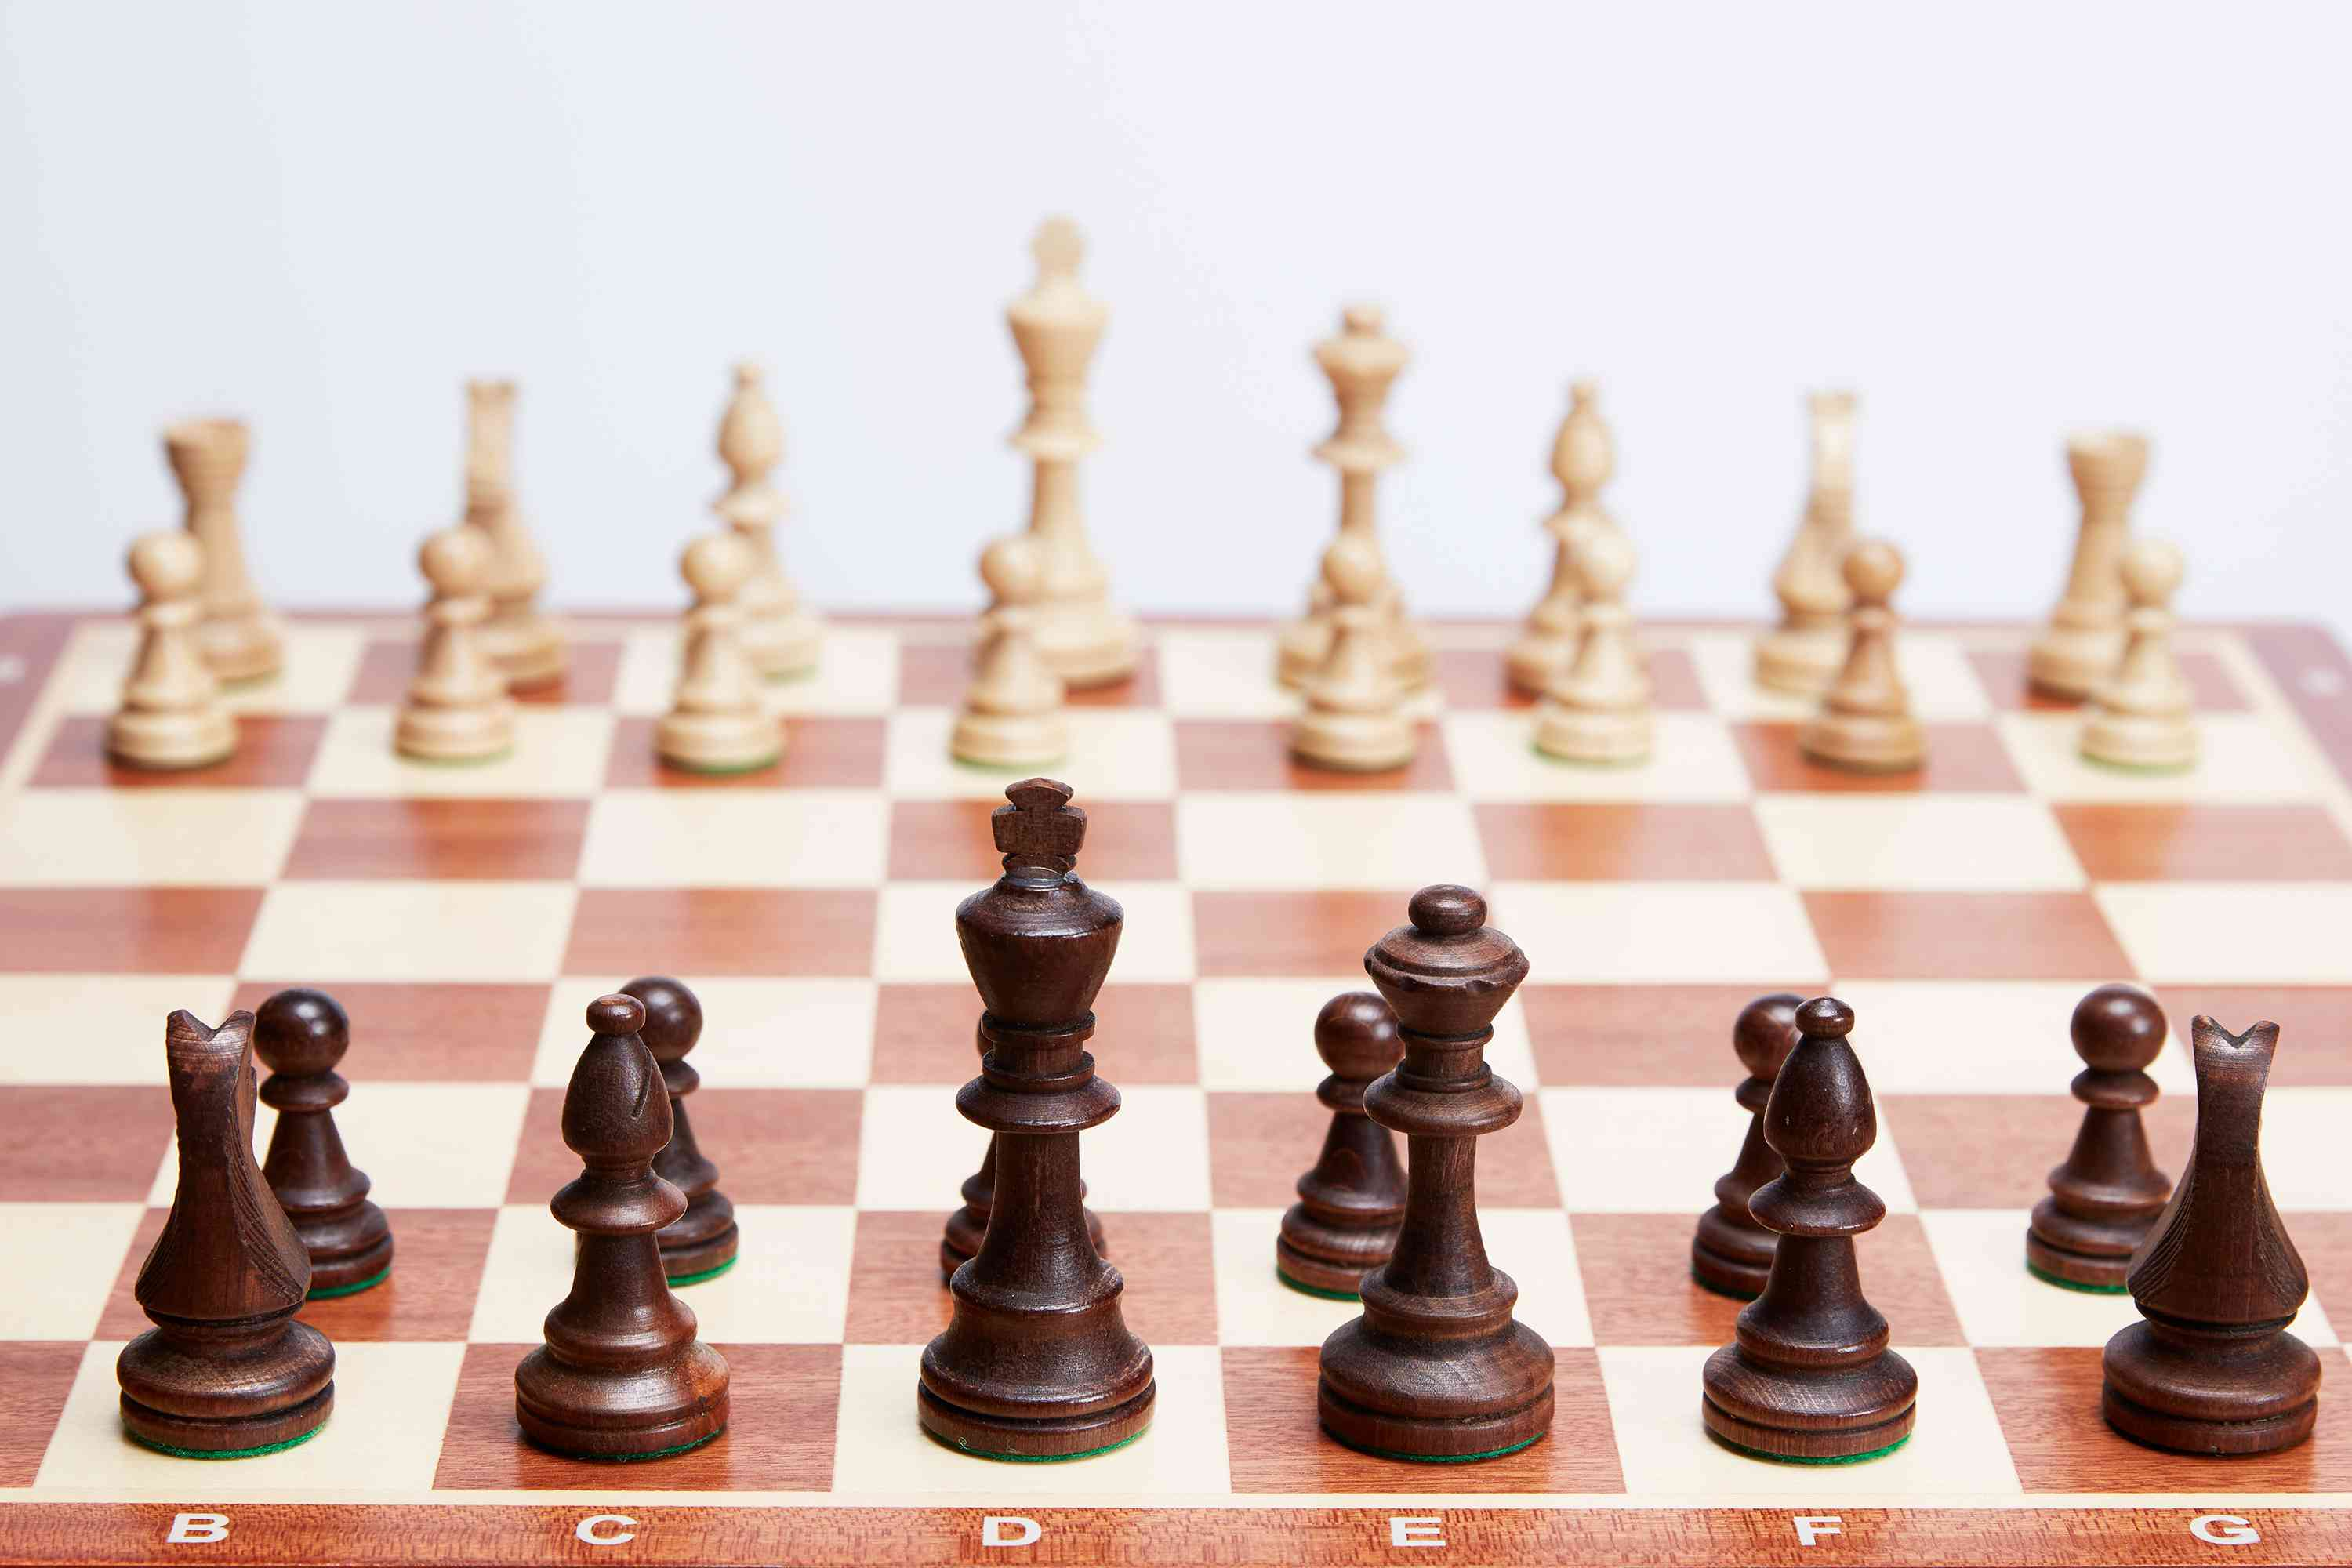 the pieces in a game of chess